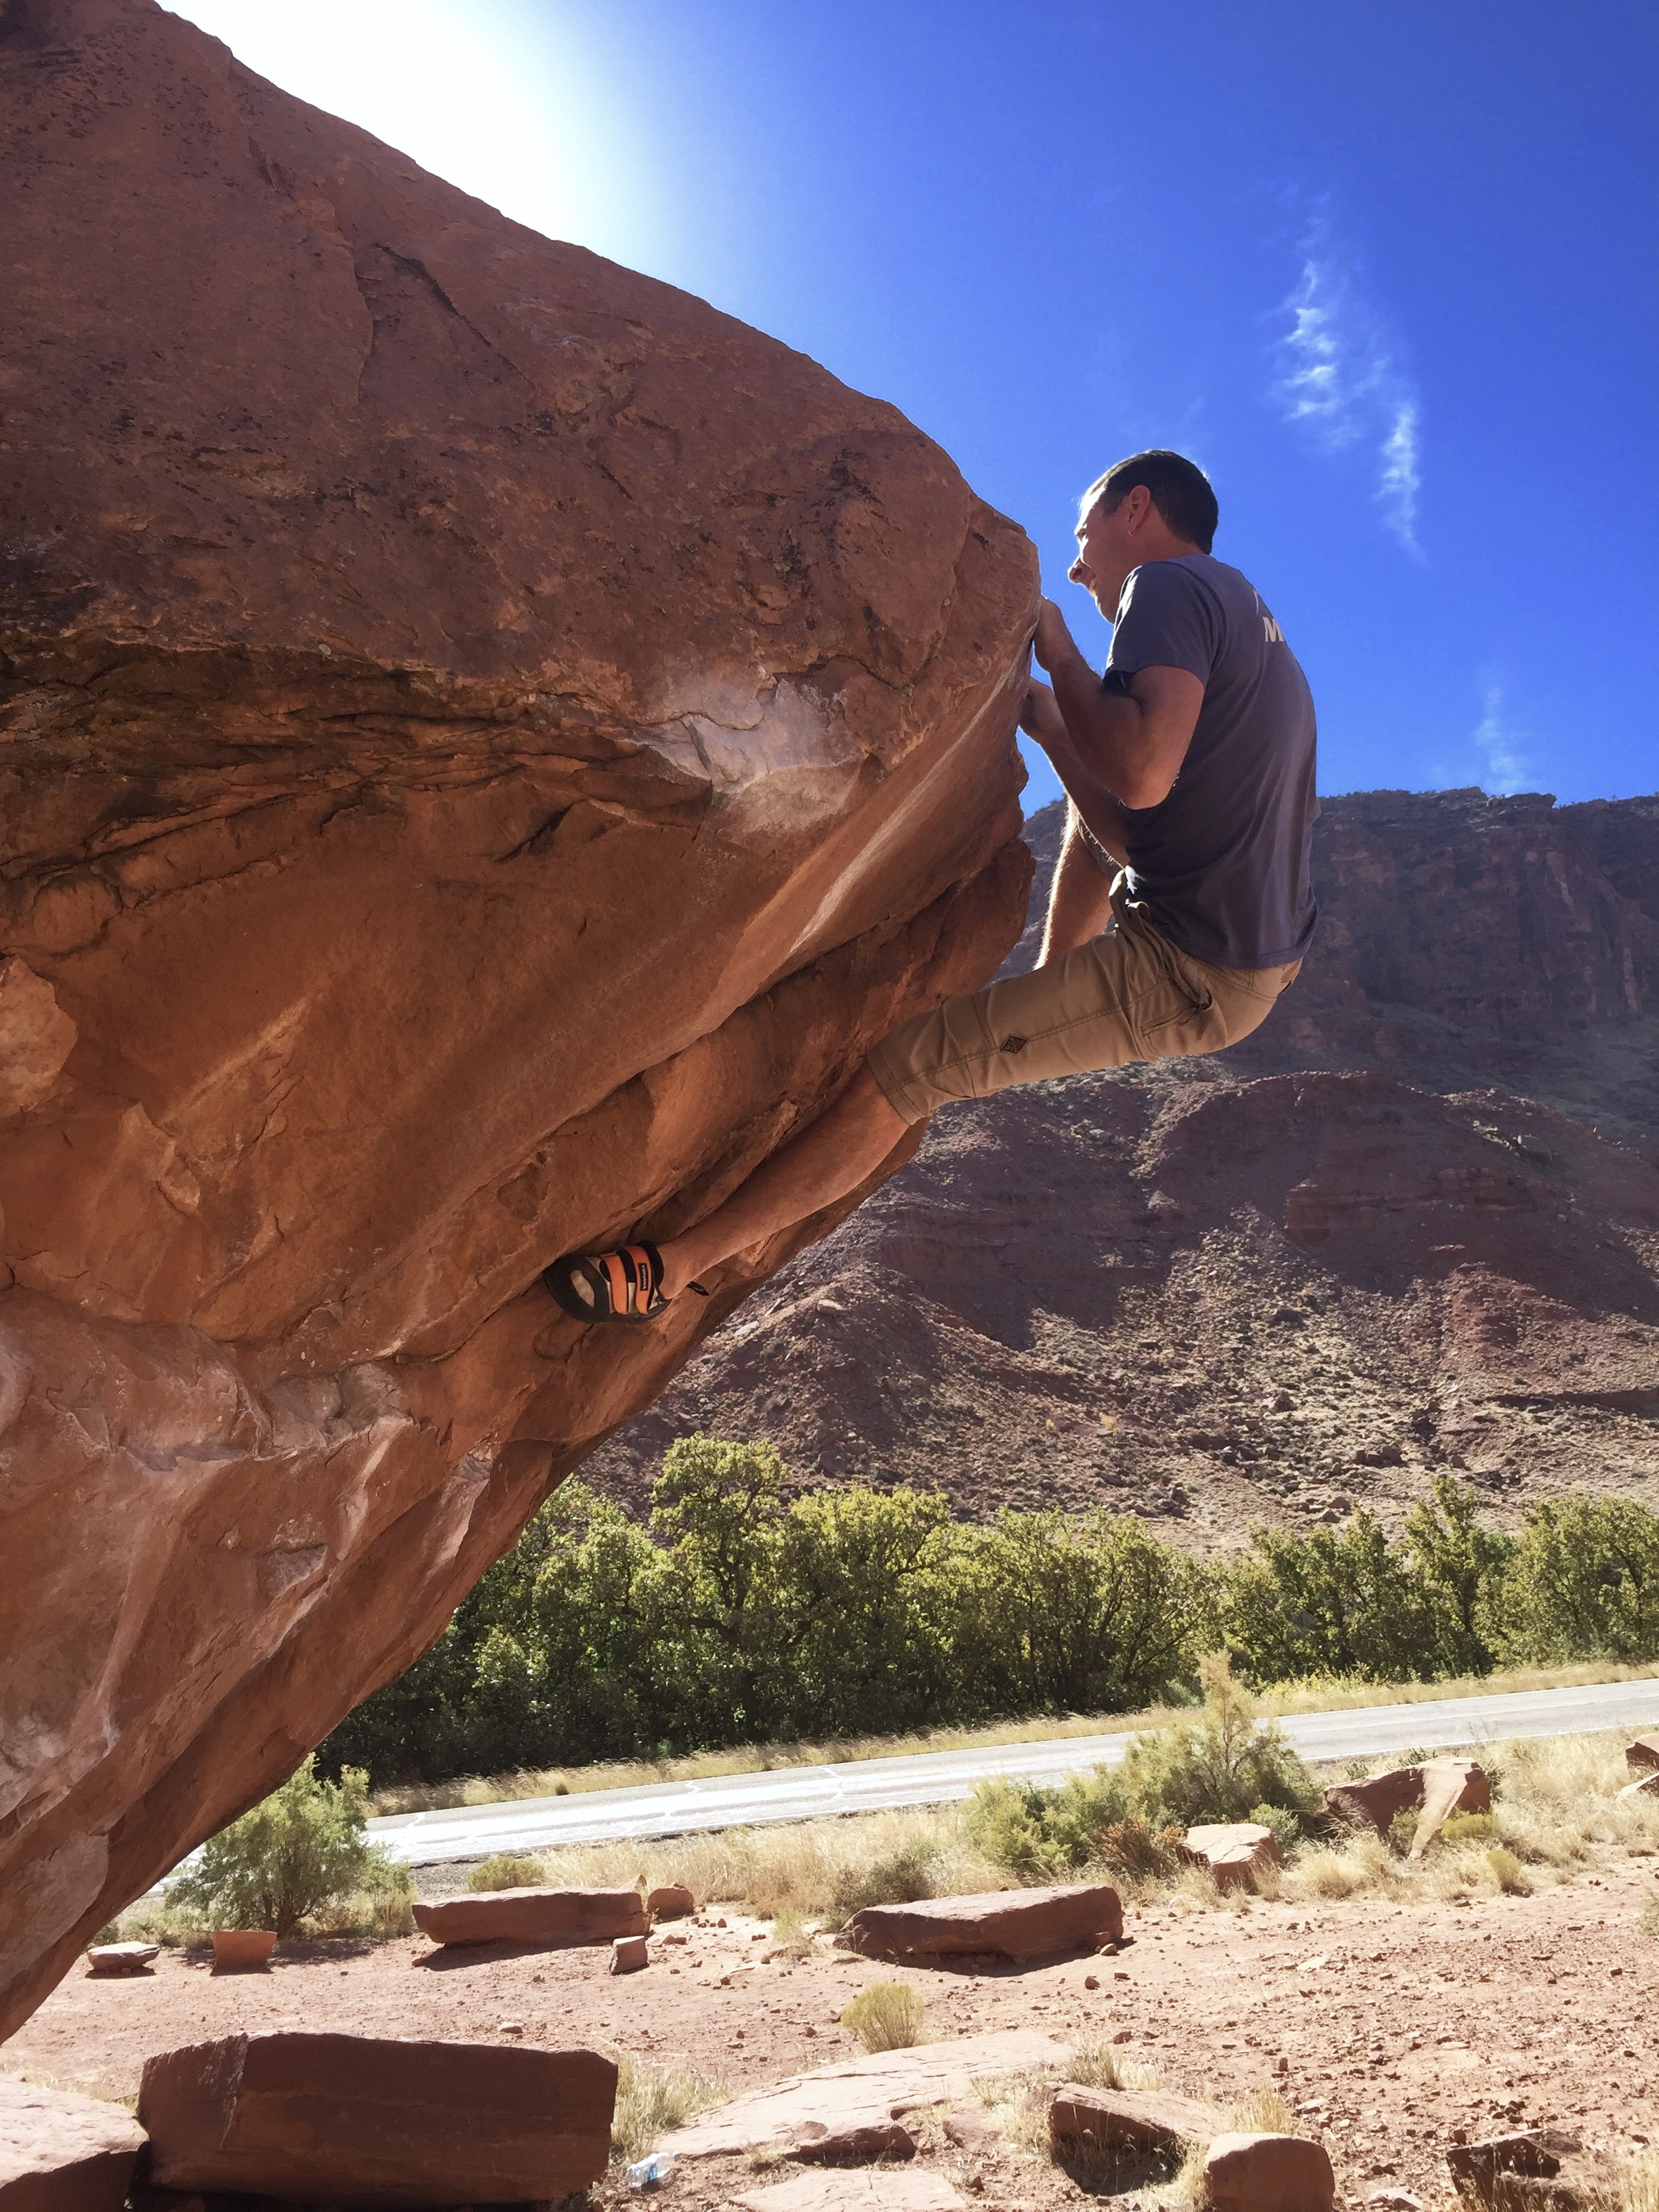 Mike Lewis rocks onto his right foot to finish Circus Trick (V5) at the Big Bend Boulders near Moab, Utah. [Photo] Drew Maloney